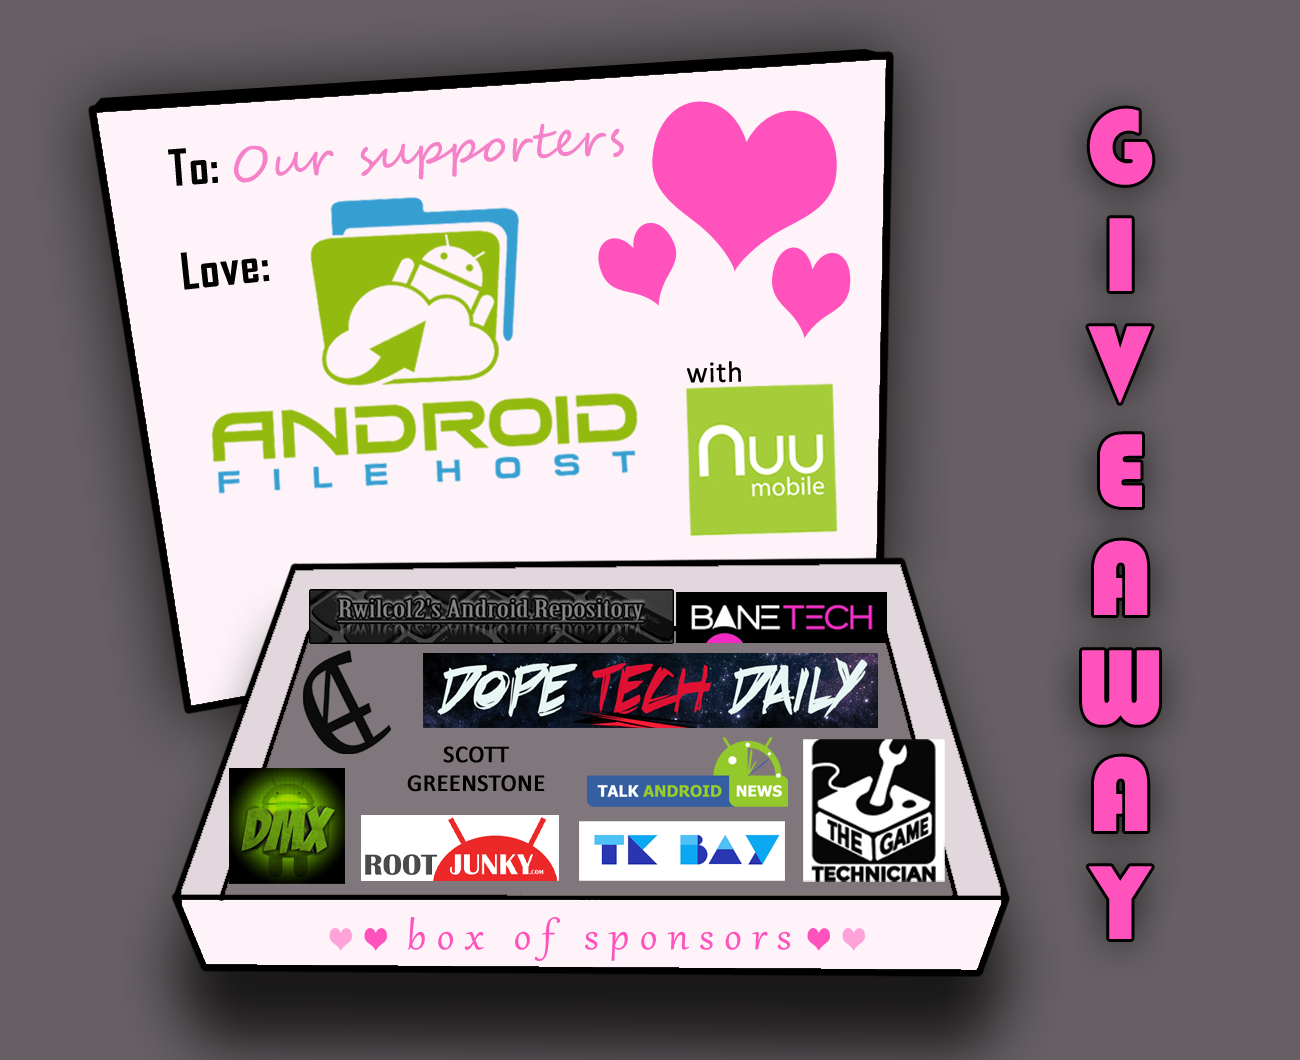 Valentine's Day Giveaway - We Love You!